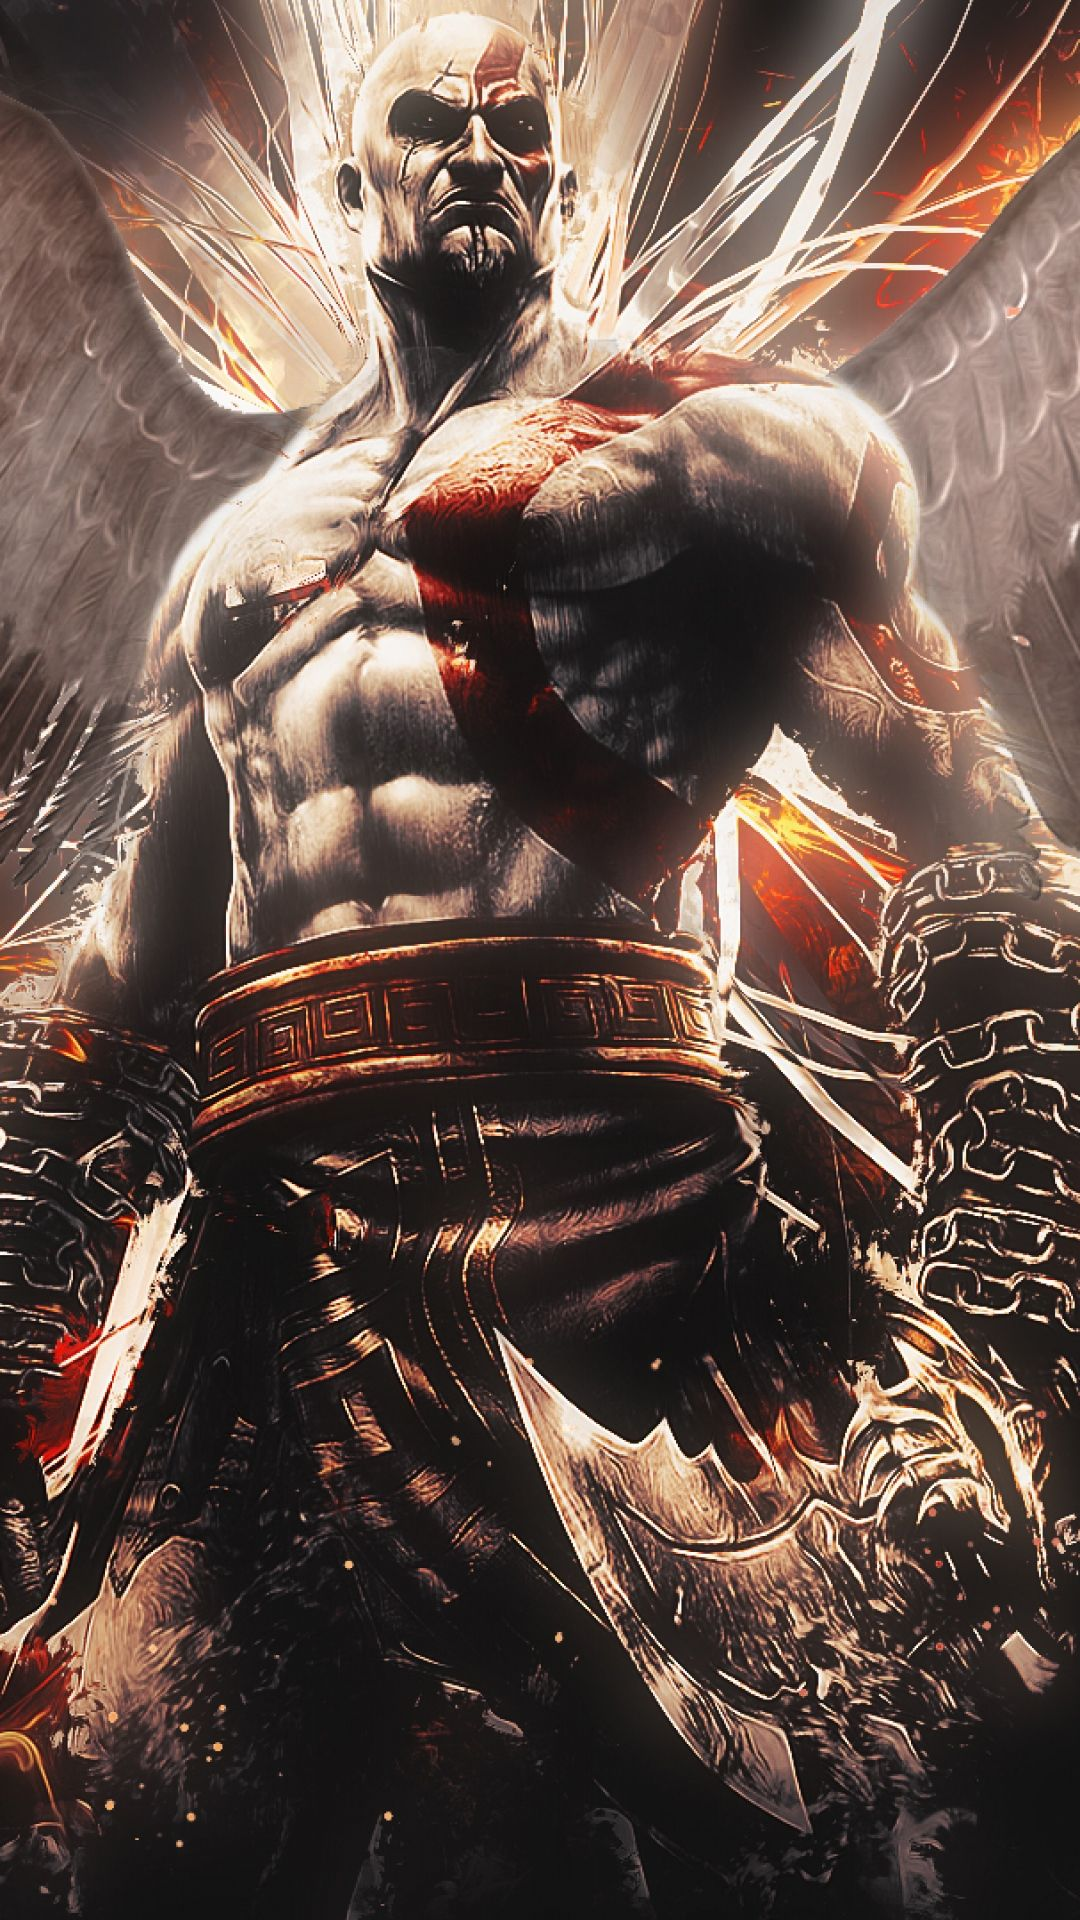 Kratos God Of War Hd Wallpapers Backgrounds Wallpaper God Of War Kratos God Of War War